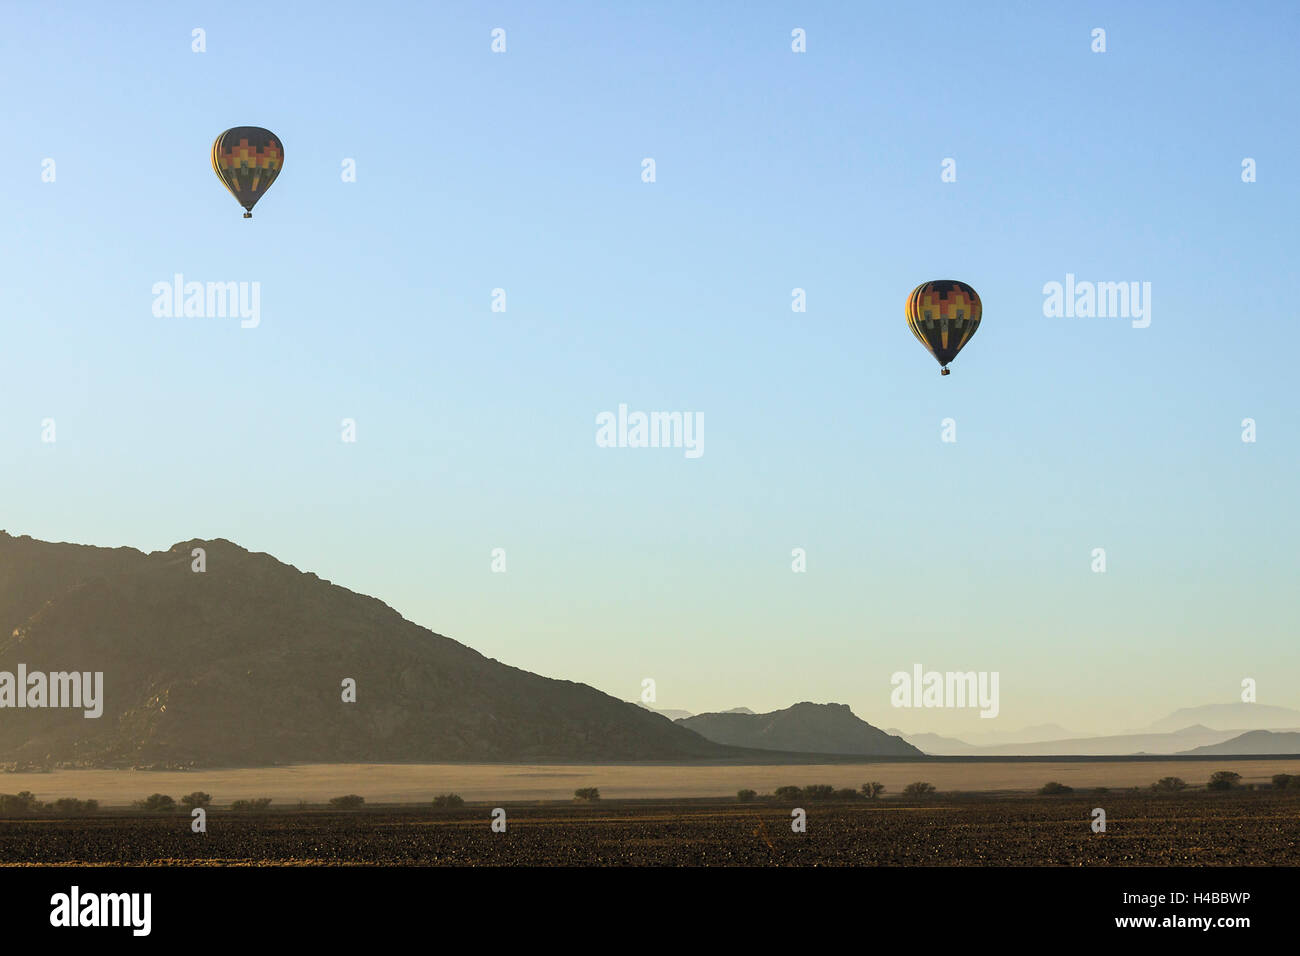 Two hot air balloons flying over the Namib Desert, Sossusvlei, Namibia - Stock Image